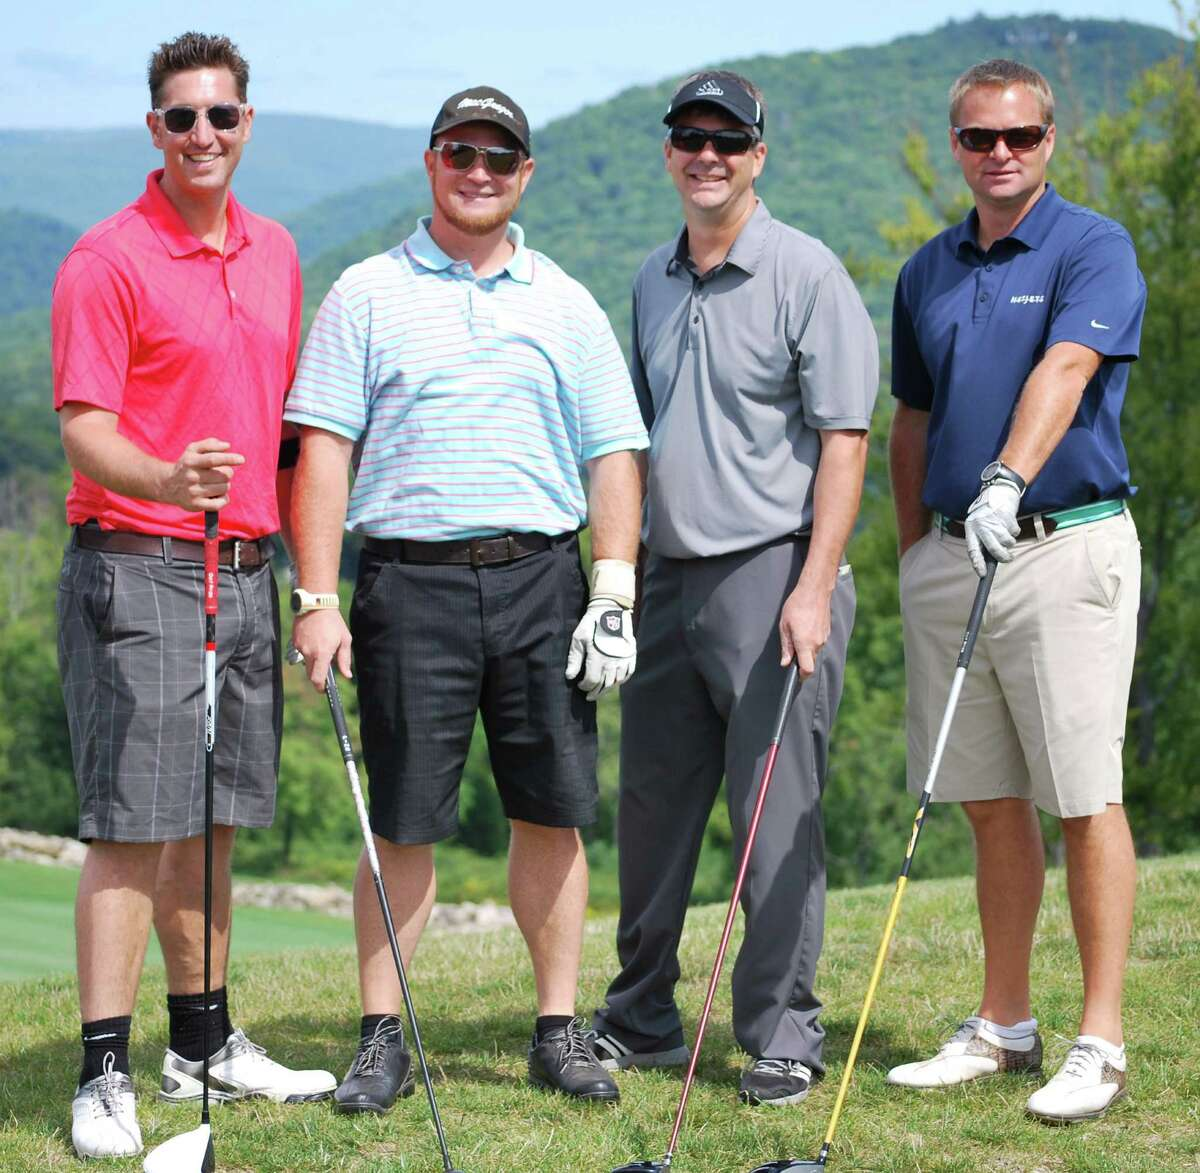 The foursome of Keith Fowler, Patrick Brown, Tim Holland and Greg Fenn captured first place in the ninth annual Quad-Am Golf Classic at Bull's Bridge Golf Club in South Kent. Courtesy of YardApes Landscaping